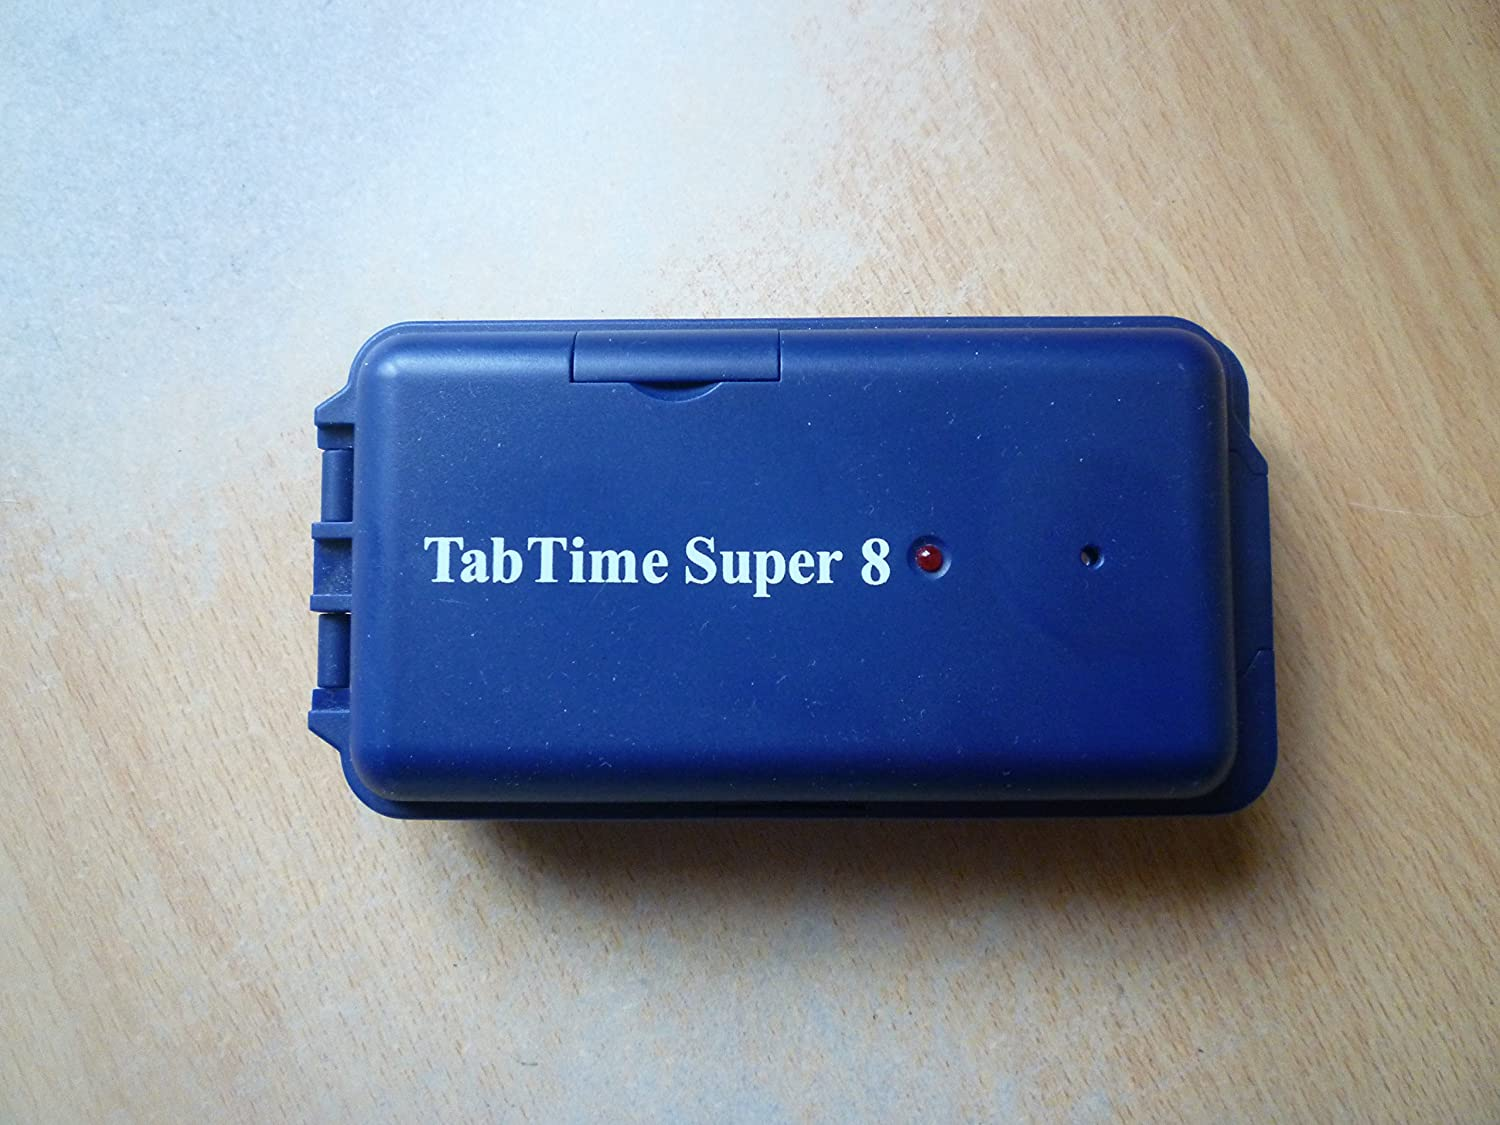 TabTime Super 8 Mii, Park insons SIlberkanne dispensador ...